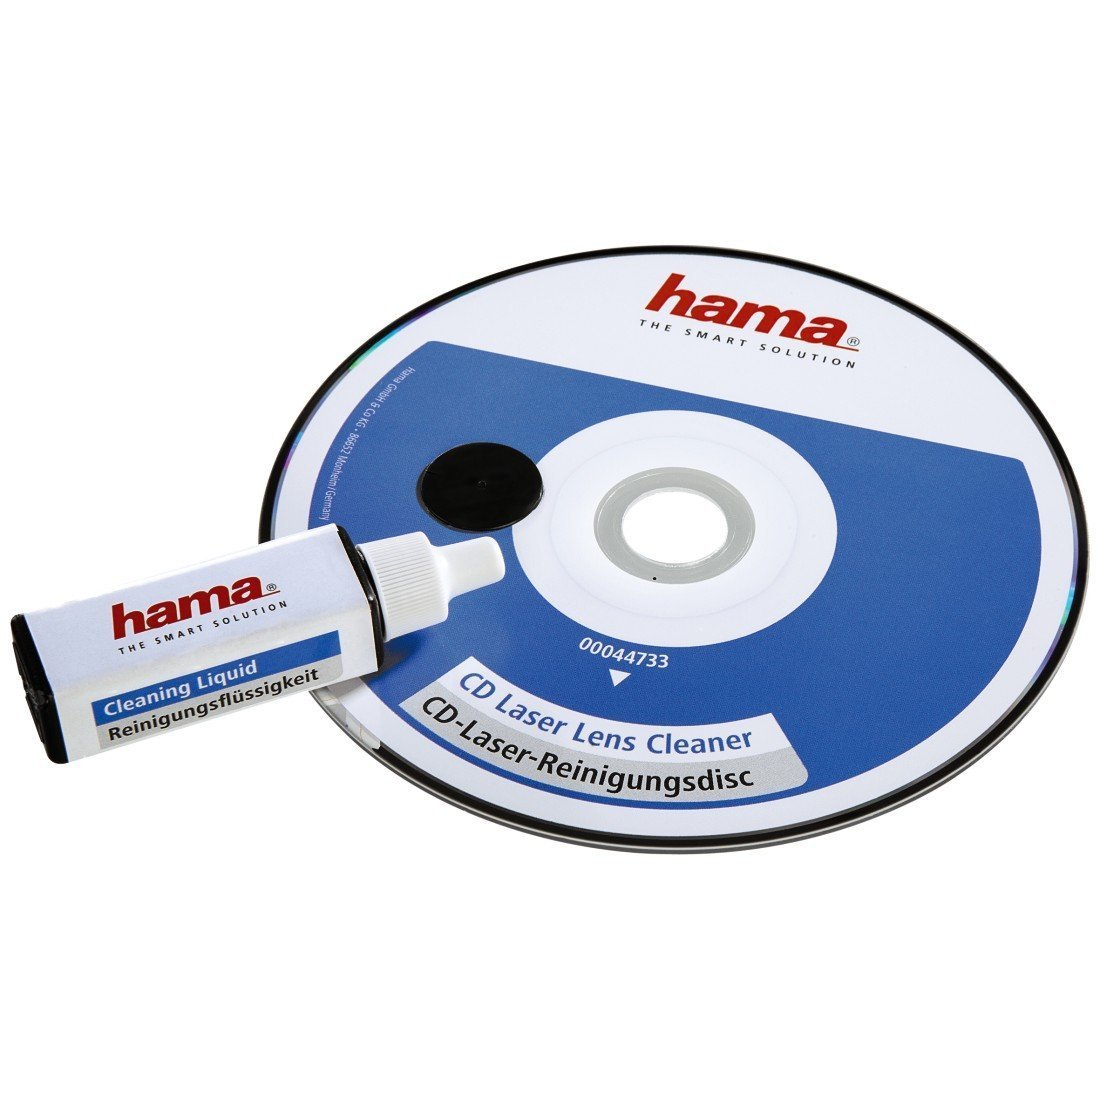 Hama CD Lens Cleaning Disc with Cleaning Fluid [44733] by Hama